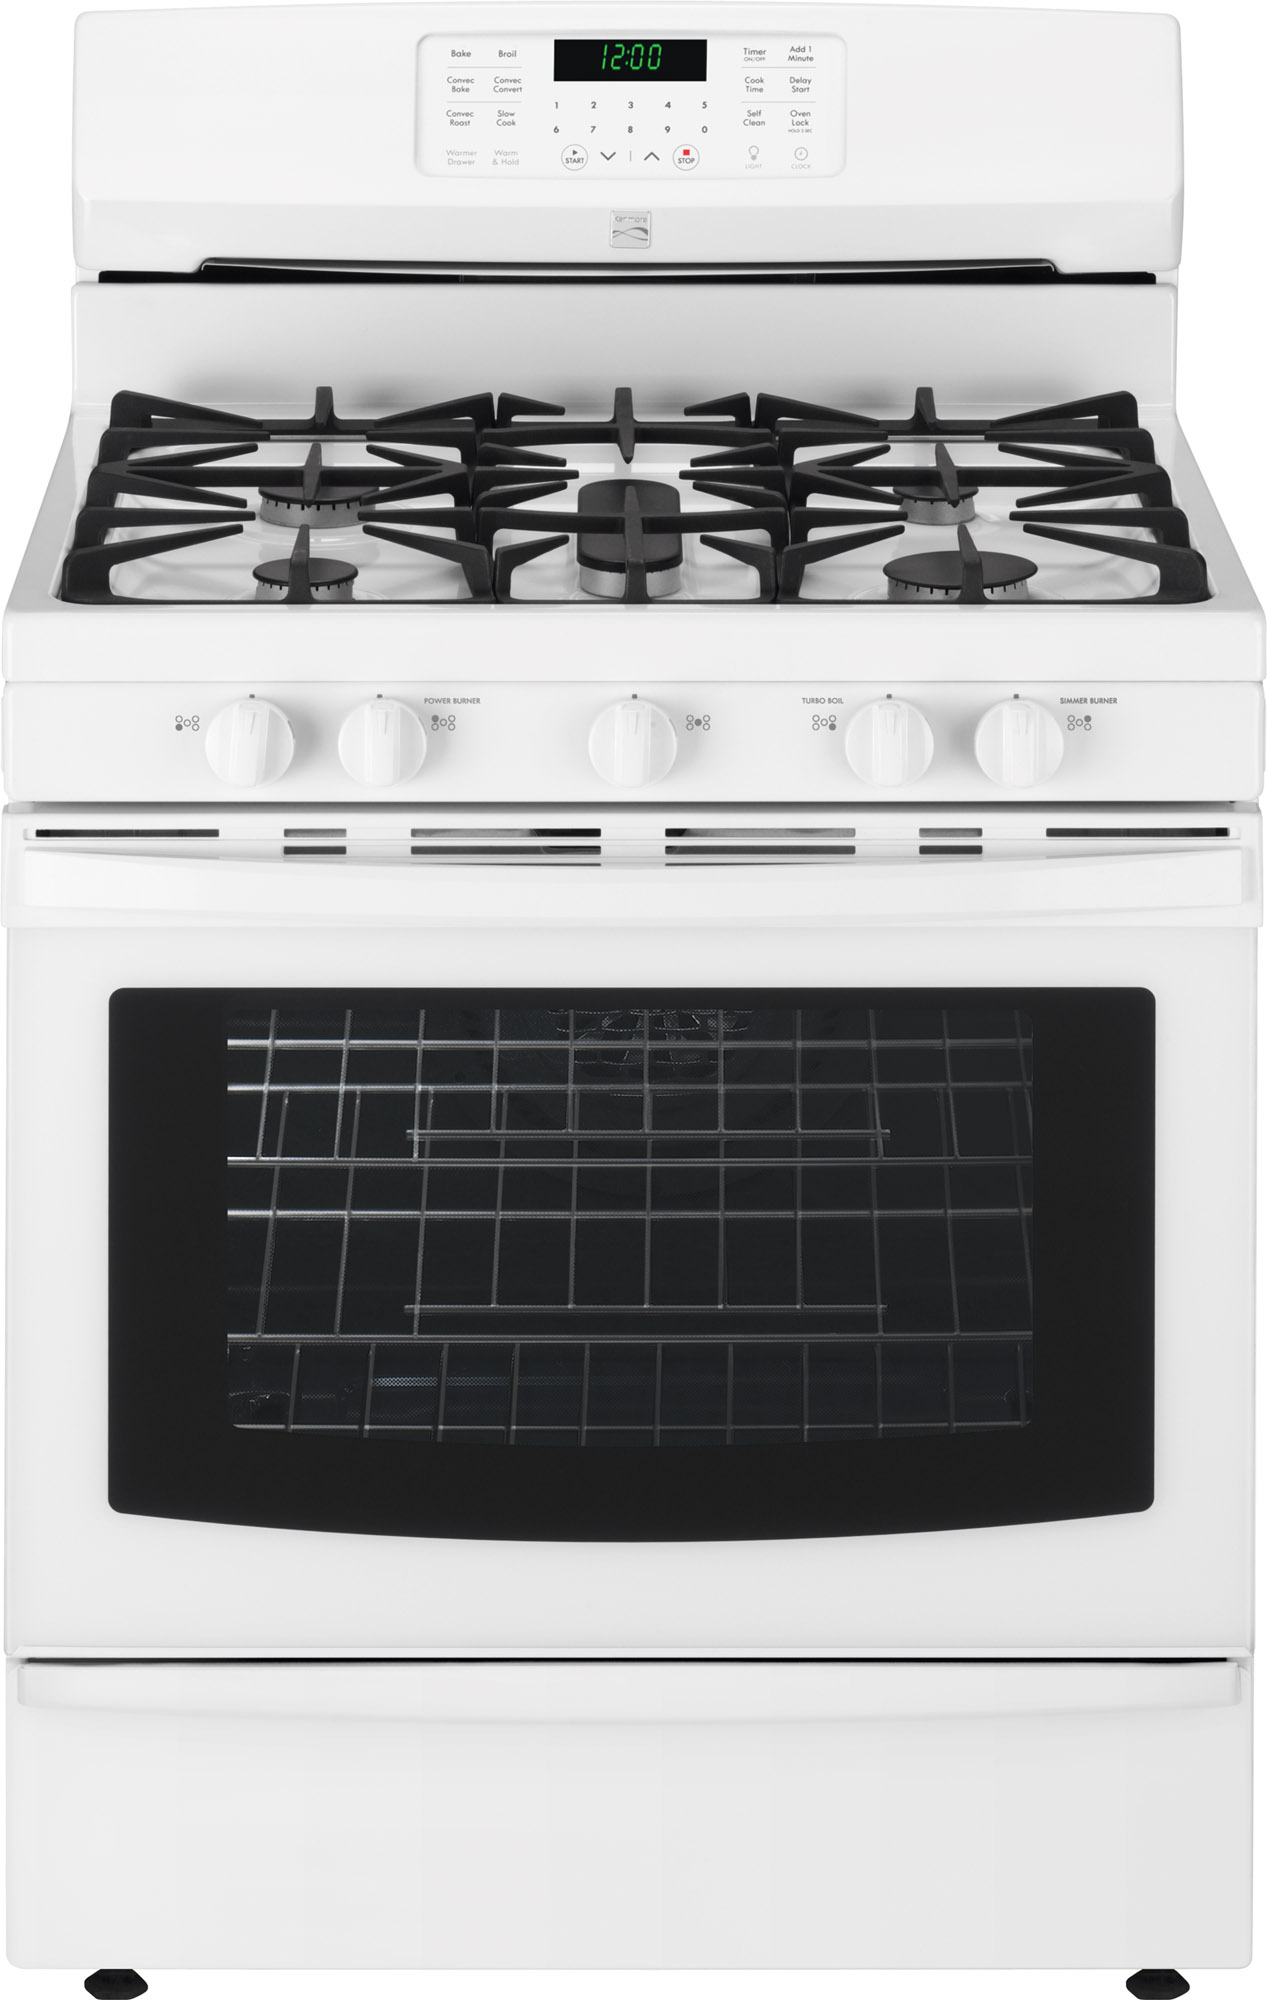 Kenmore Range Stove Oven Model 790 74332310 Parts